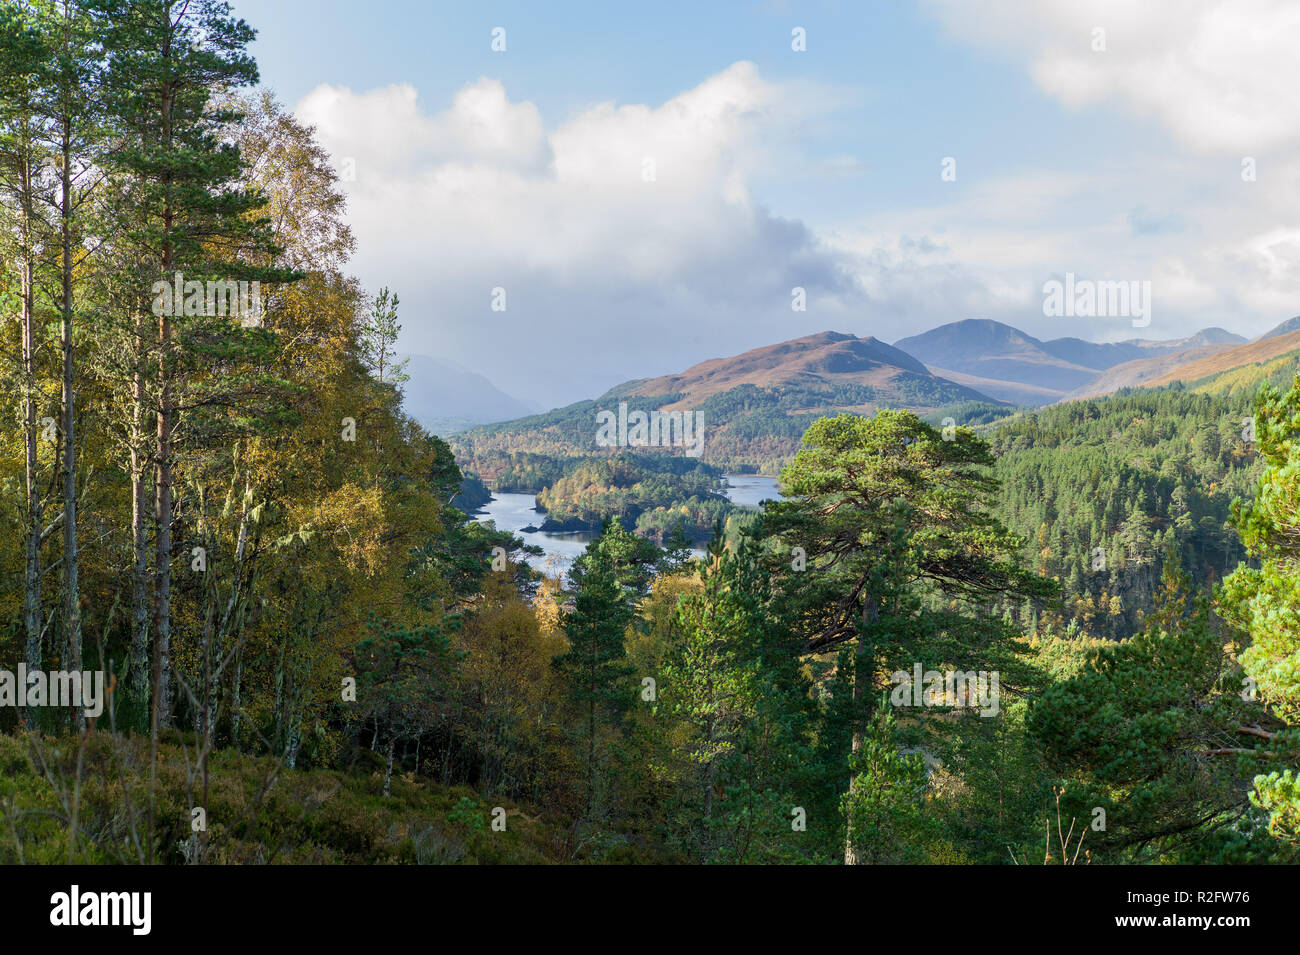 Loch Beinn a Mheadhain from the Viewpoint Trail in Glen Affric, Highlands Scotland - Stock Image